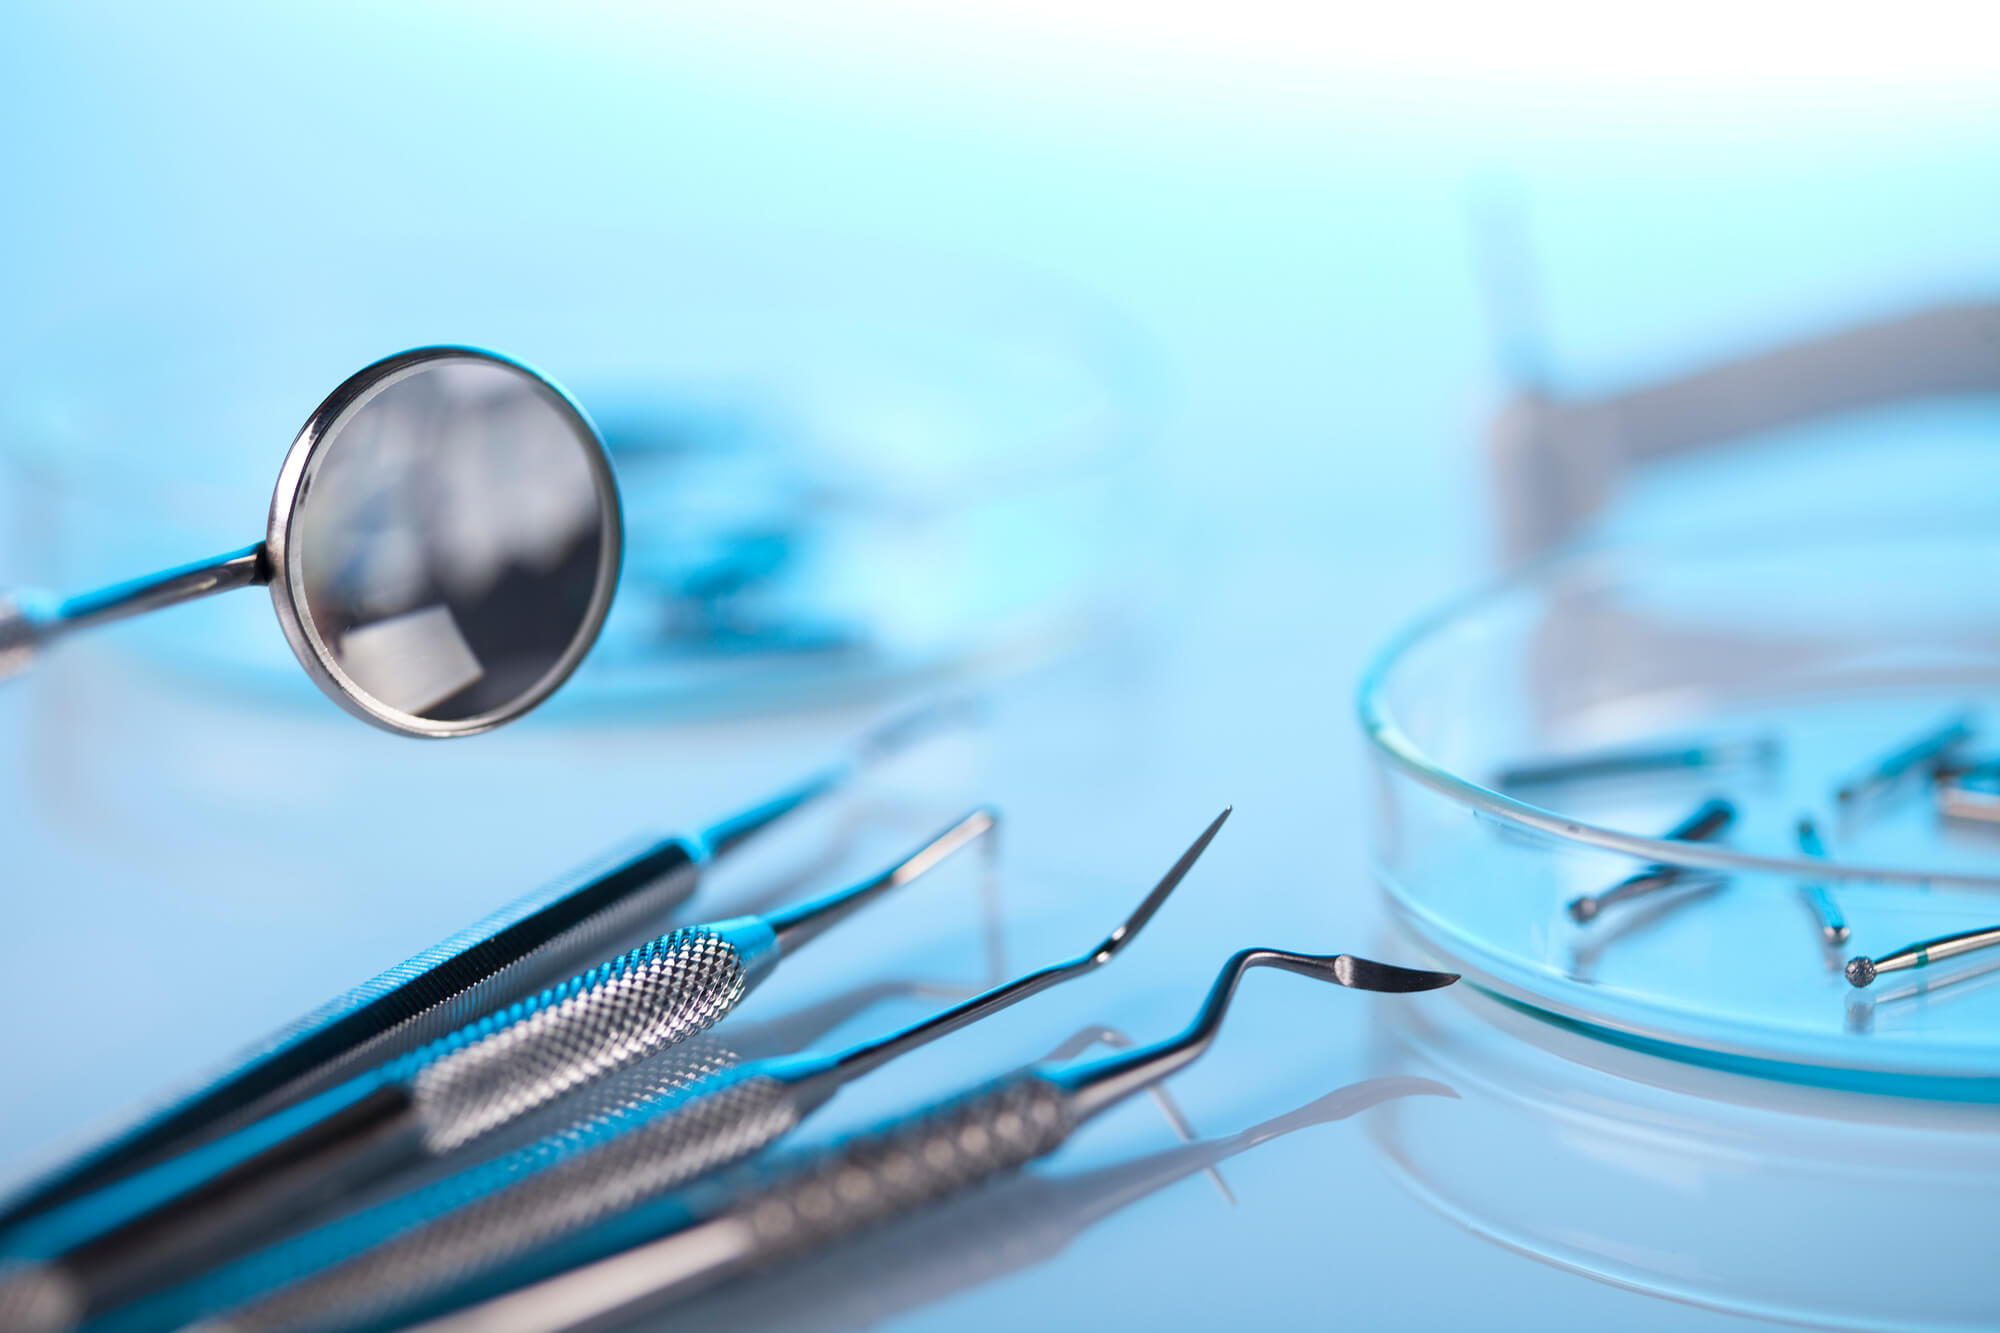 where is the best place to get dental bone graft palm beach?